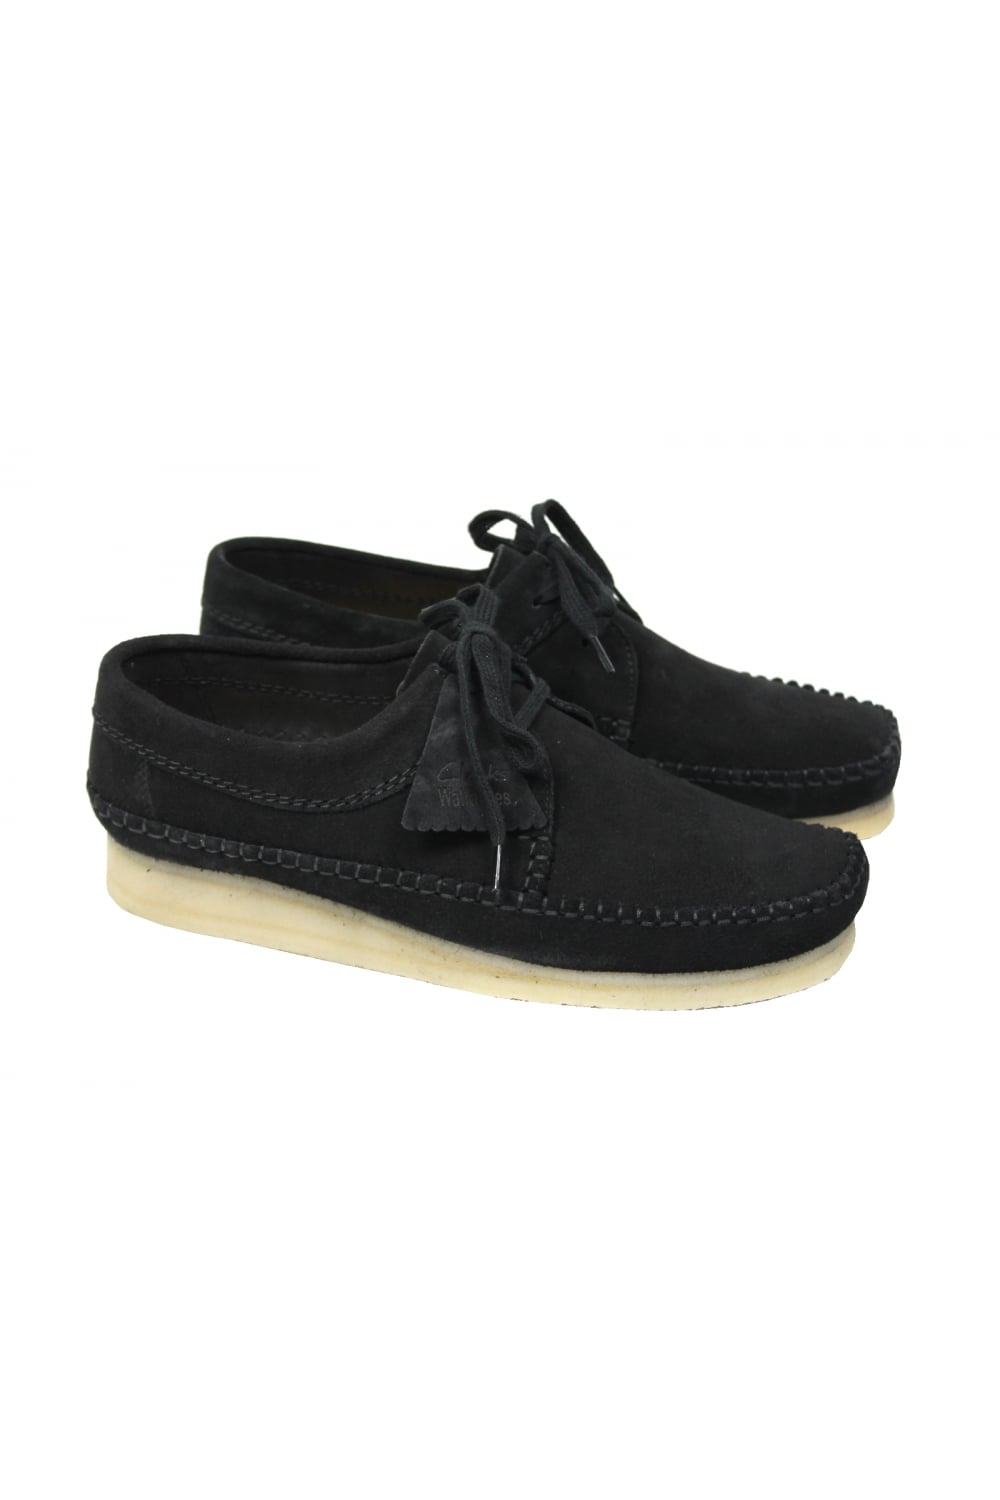 reasonably priced save up to 60% 100% genuine Weaver Suede Shoes (Black)